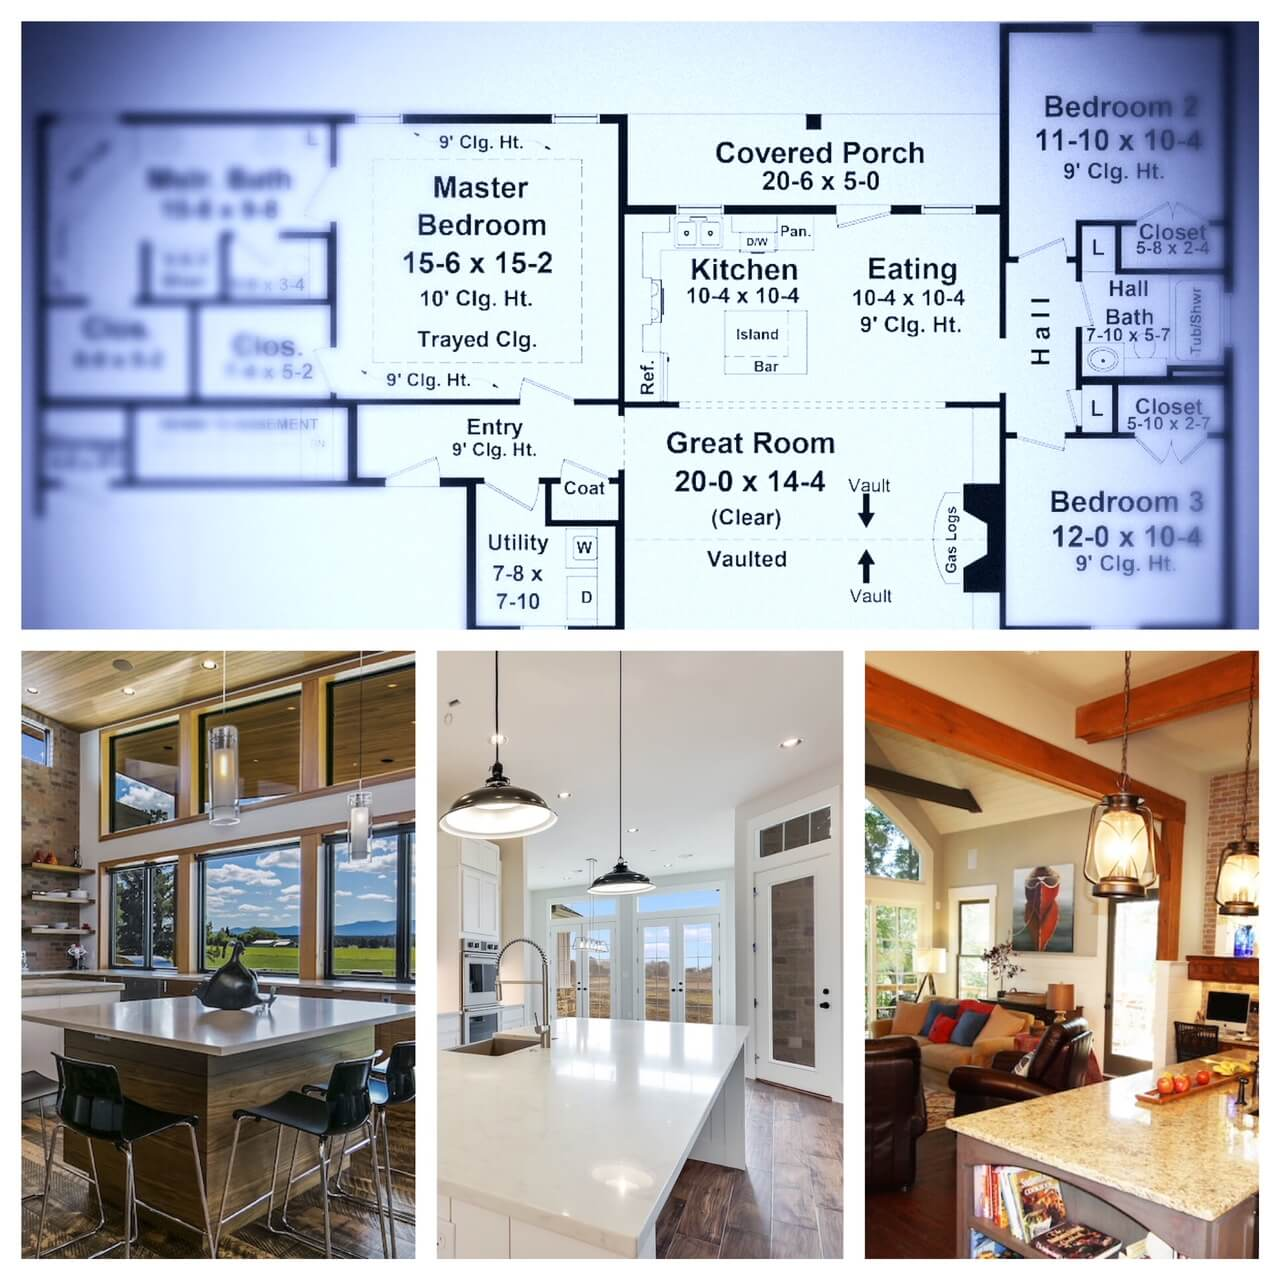 An example of house floor plan blueprints and the wide variety of kitchen design options and styles available from small to large budgets.